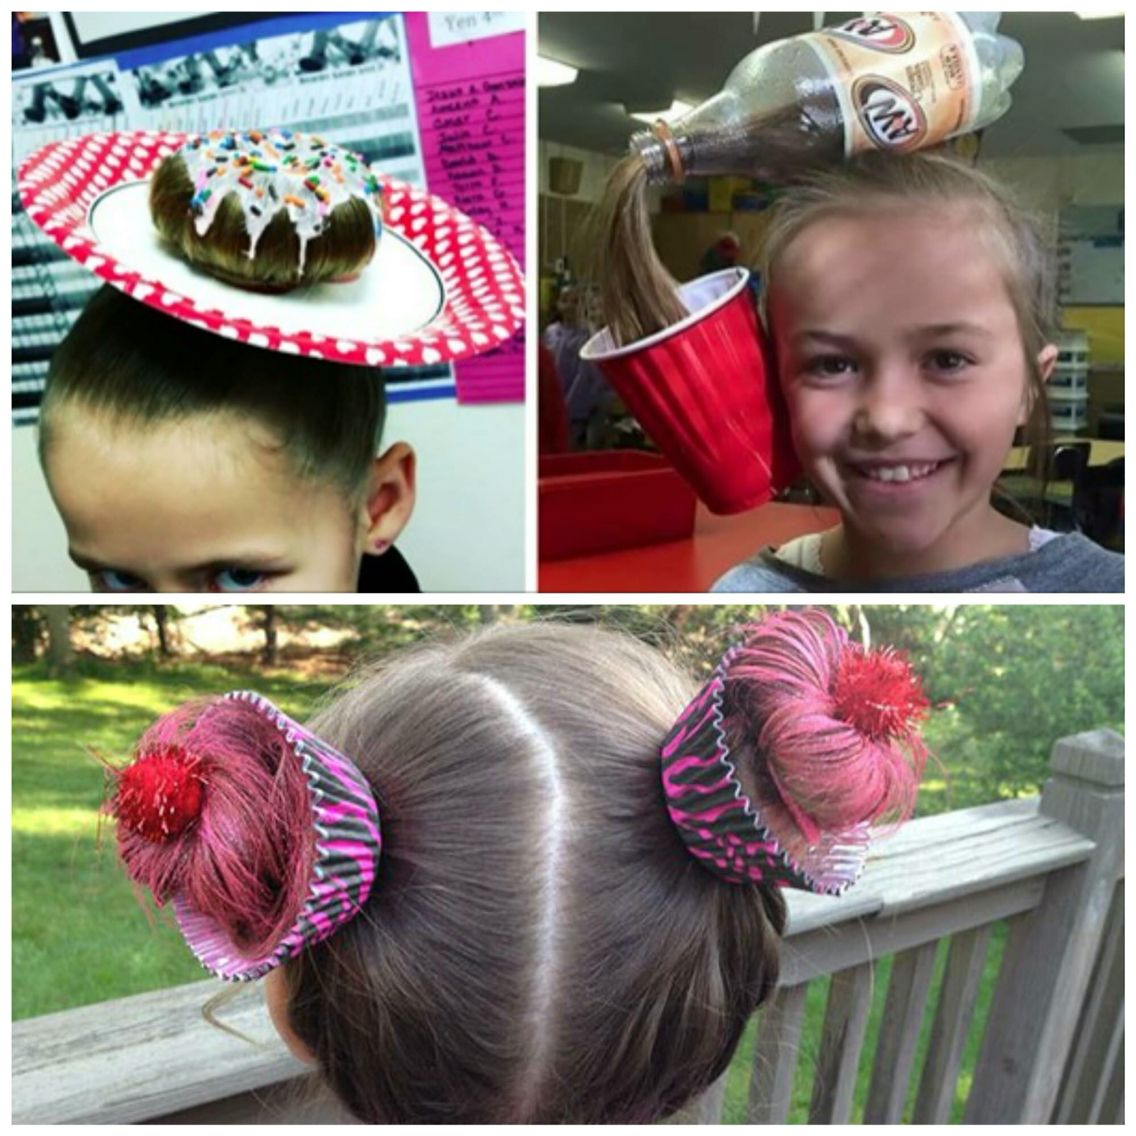 for crazy hair day! | kids beauty tips | pinterest | crazy hair